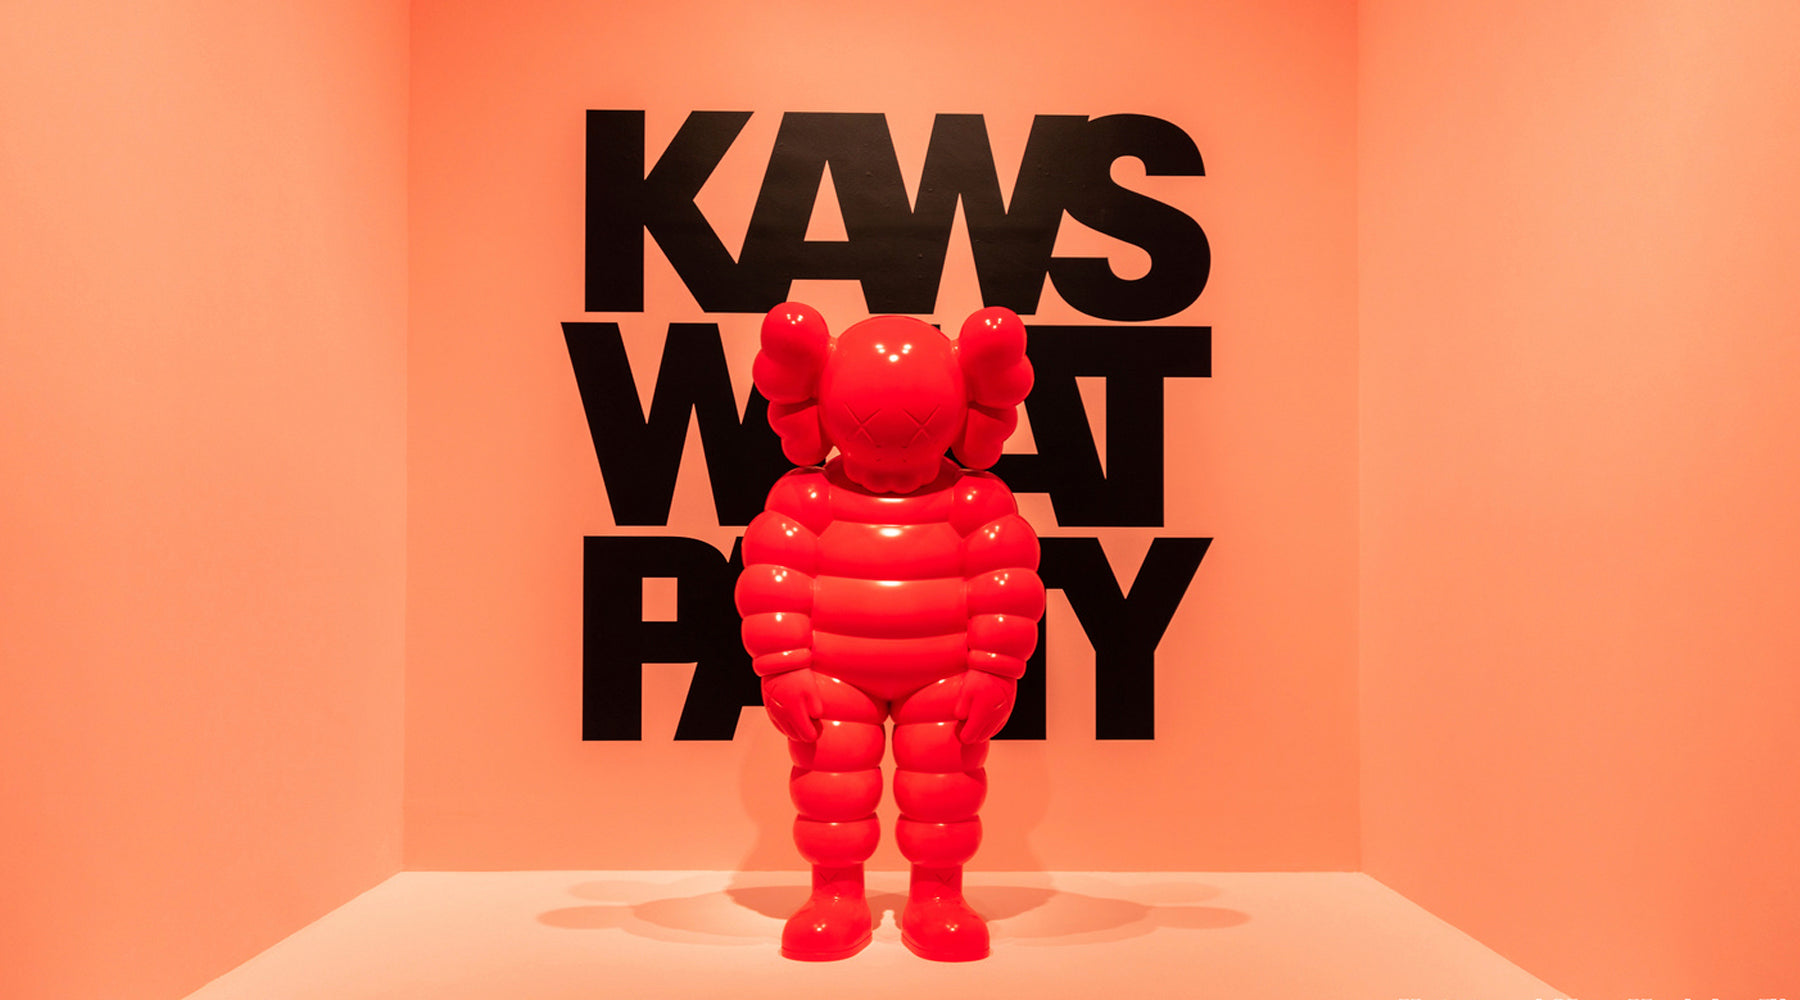 KAWS: WHAT PARTY - Exhibition, Book & Companion